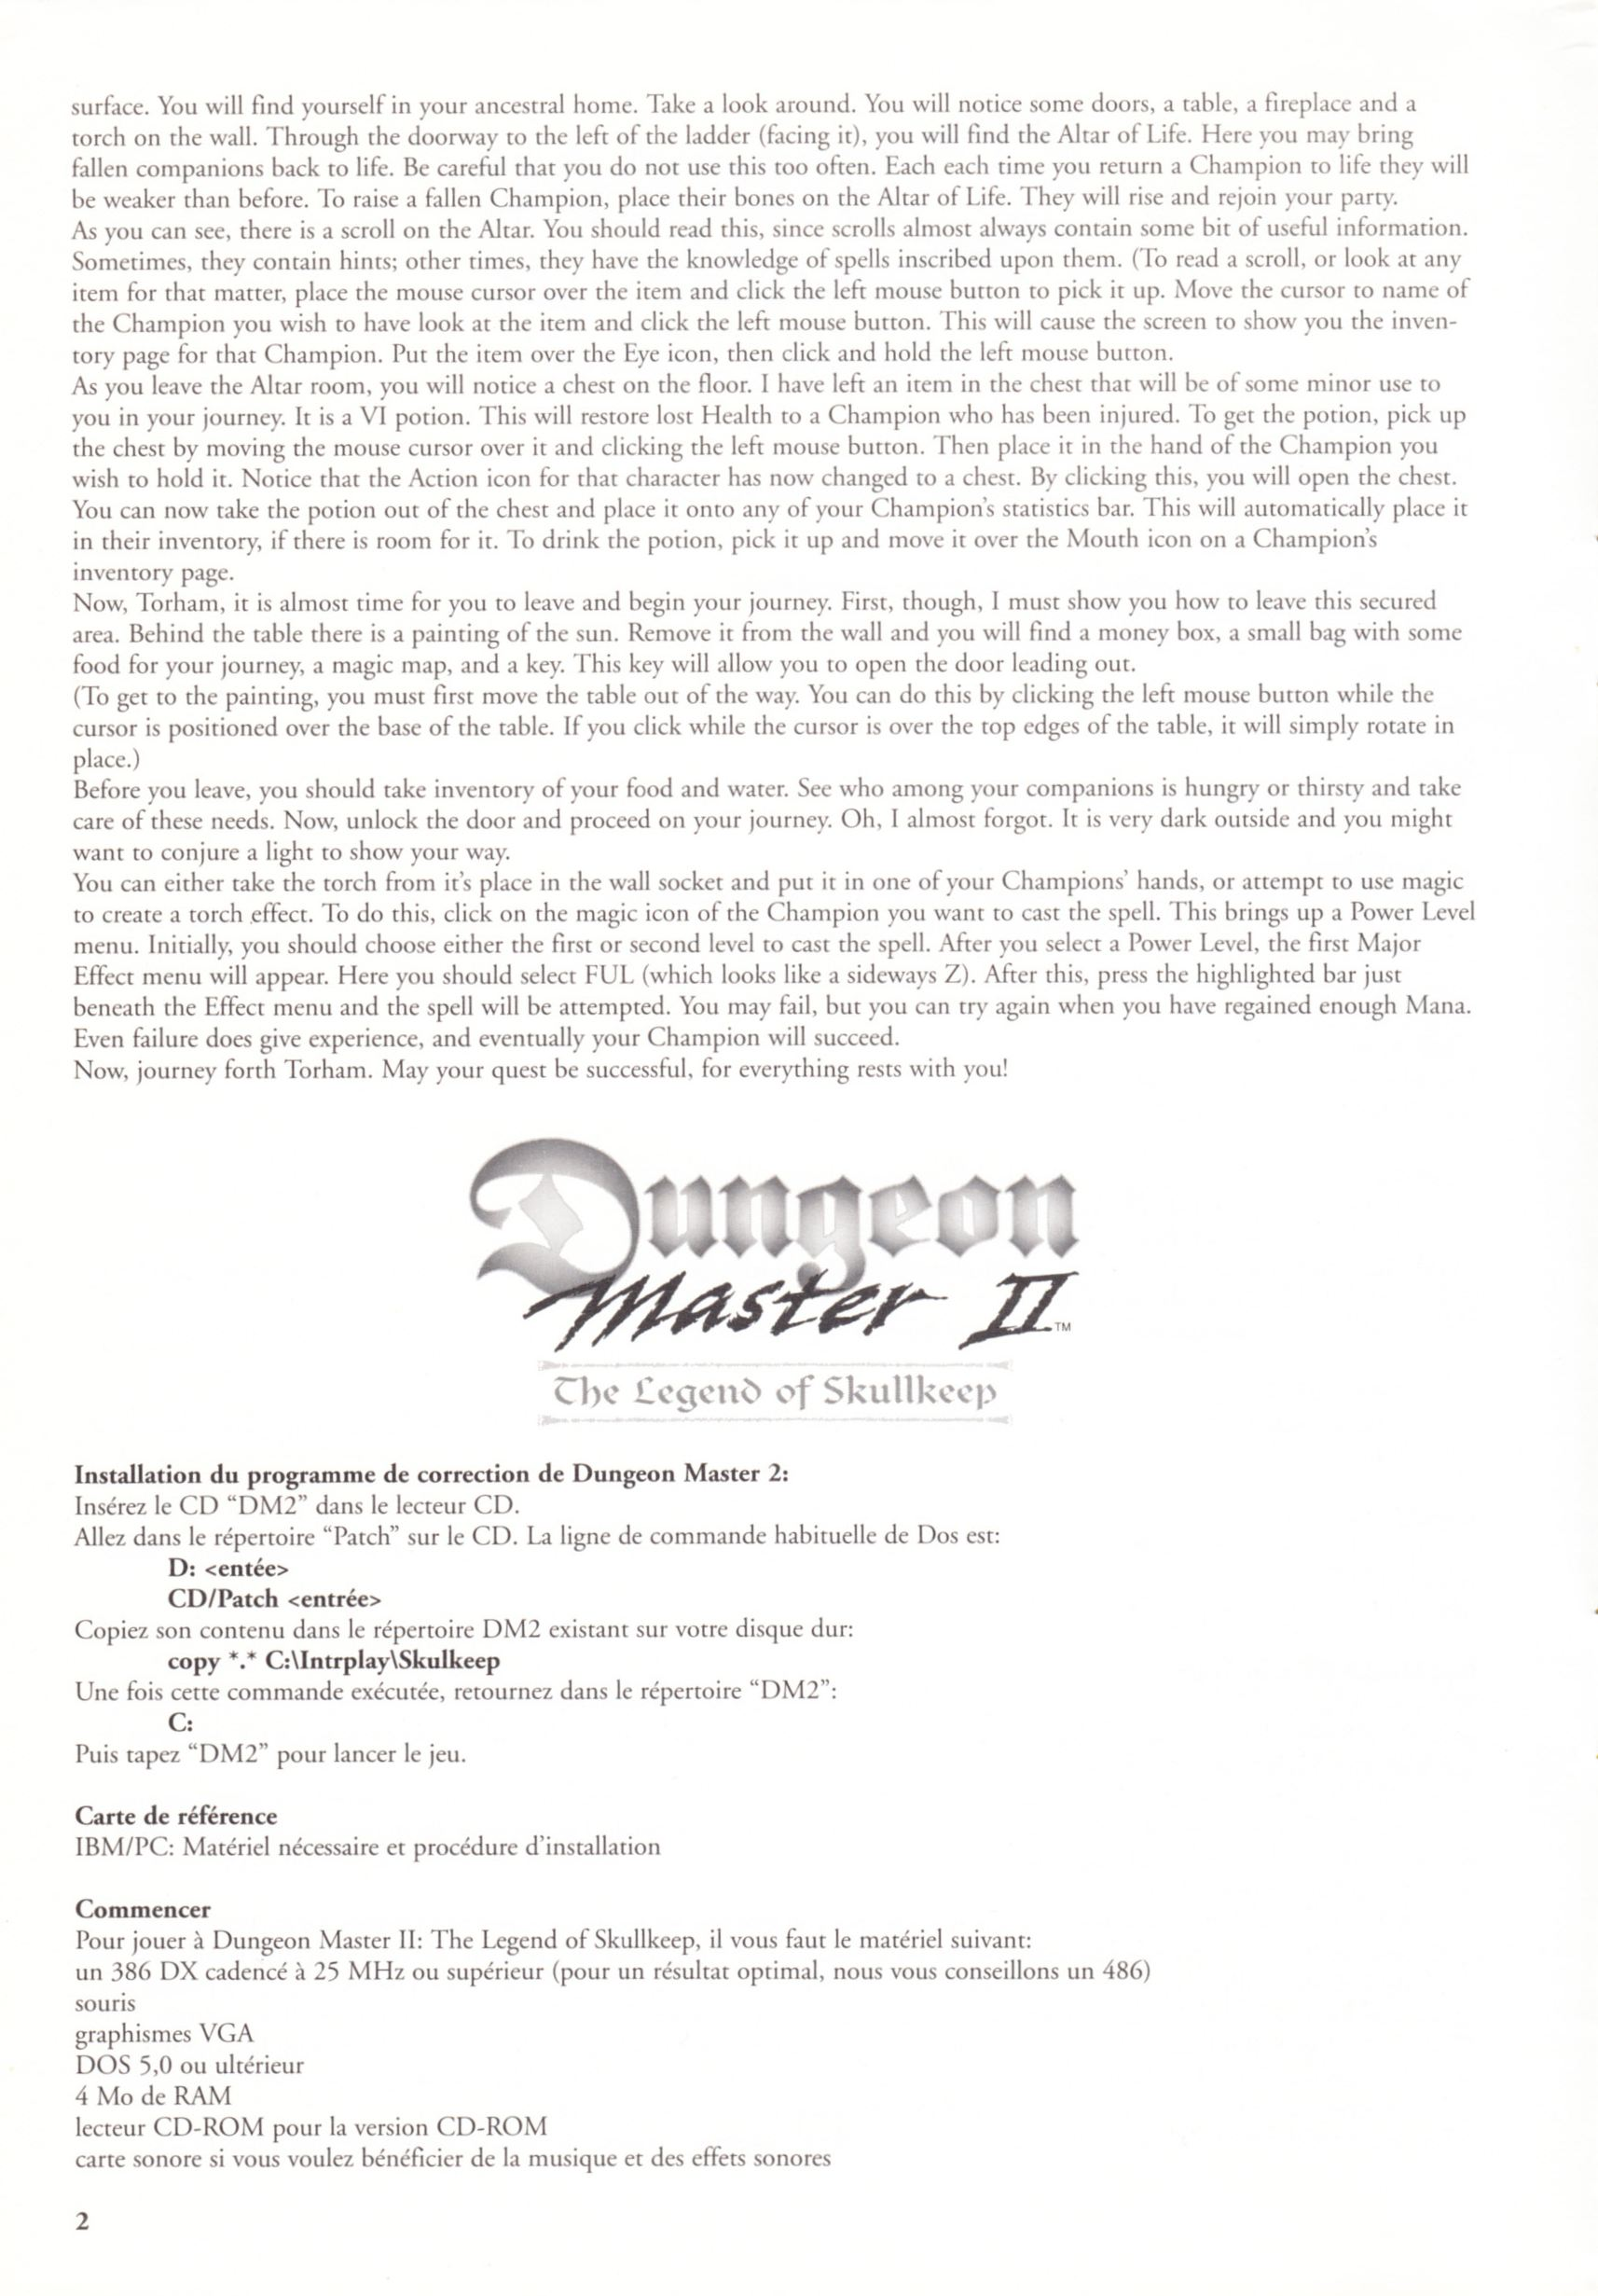 Game - Dungeon Master II - FR - PC - Blackmarket With Manual - Reference Card - Page 002 - Scan